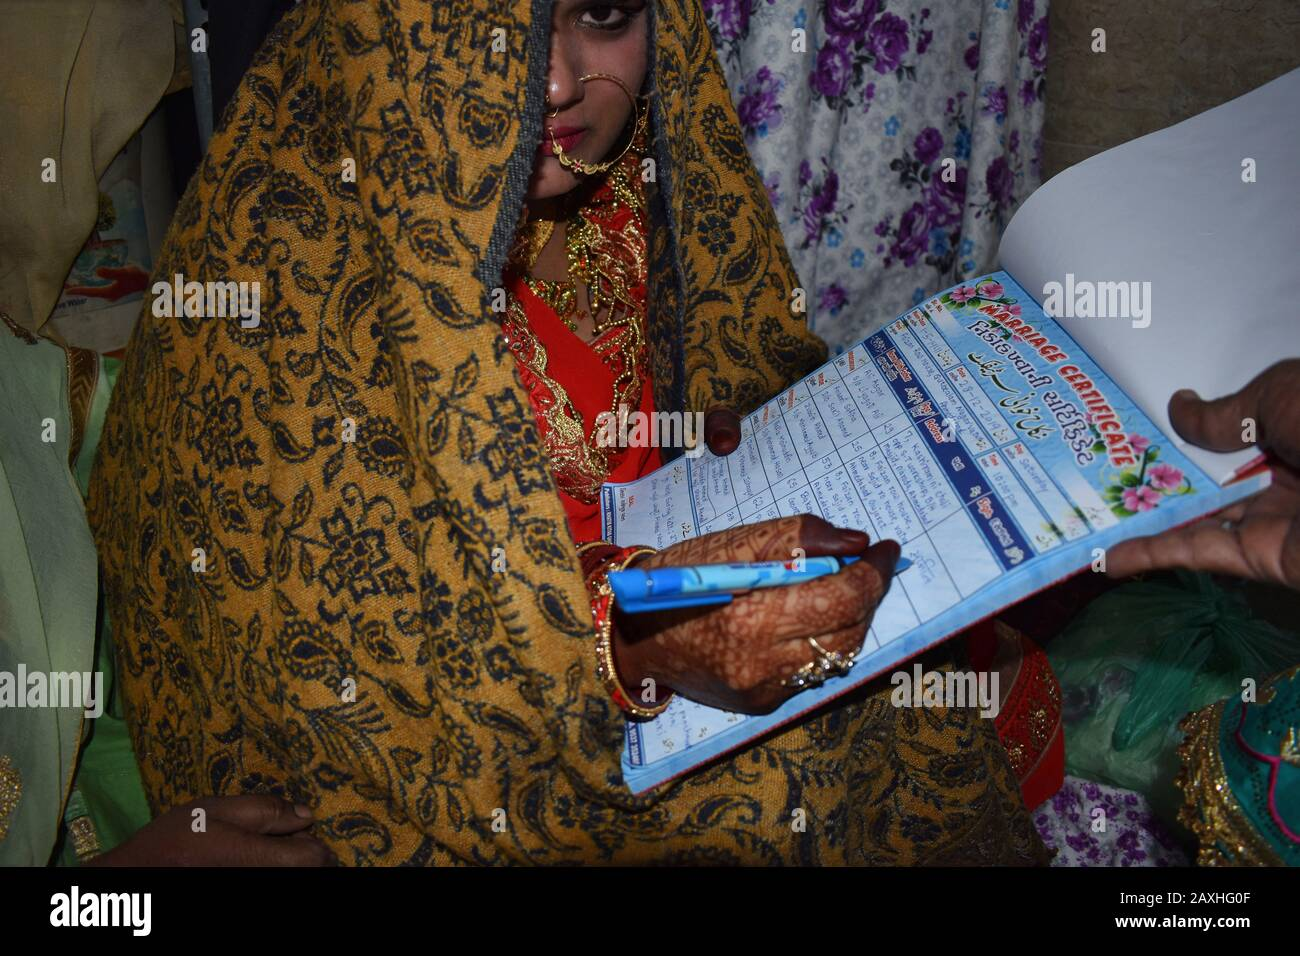 Indian Muslim bride signing the nikah nama or marriage contract an Islamic prenuptial agreement at Ahmedabad in Gujarat, India Stock Photo